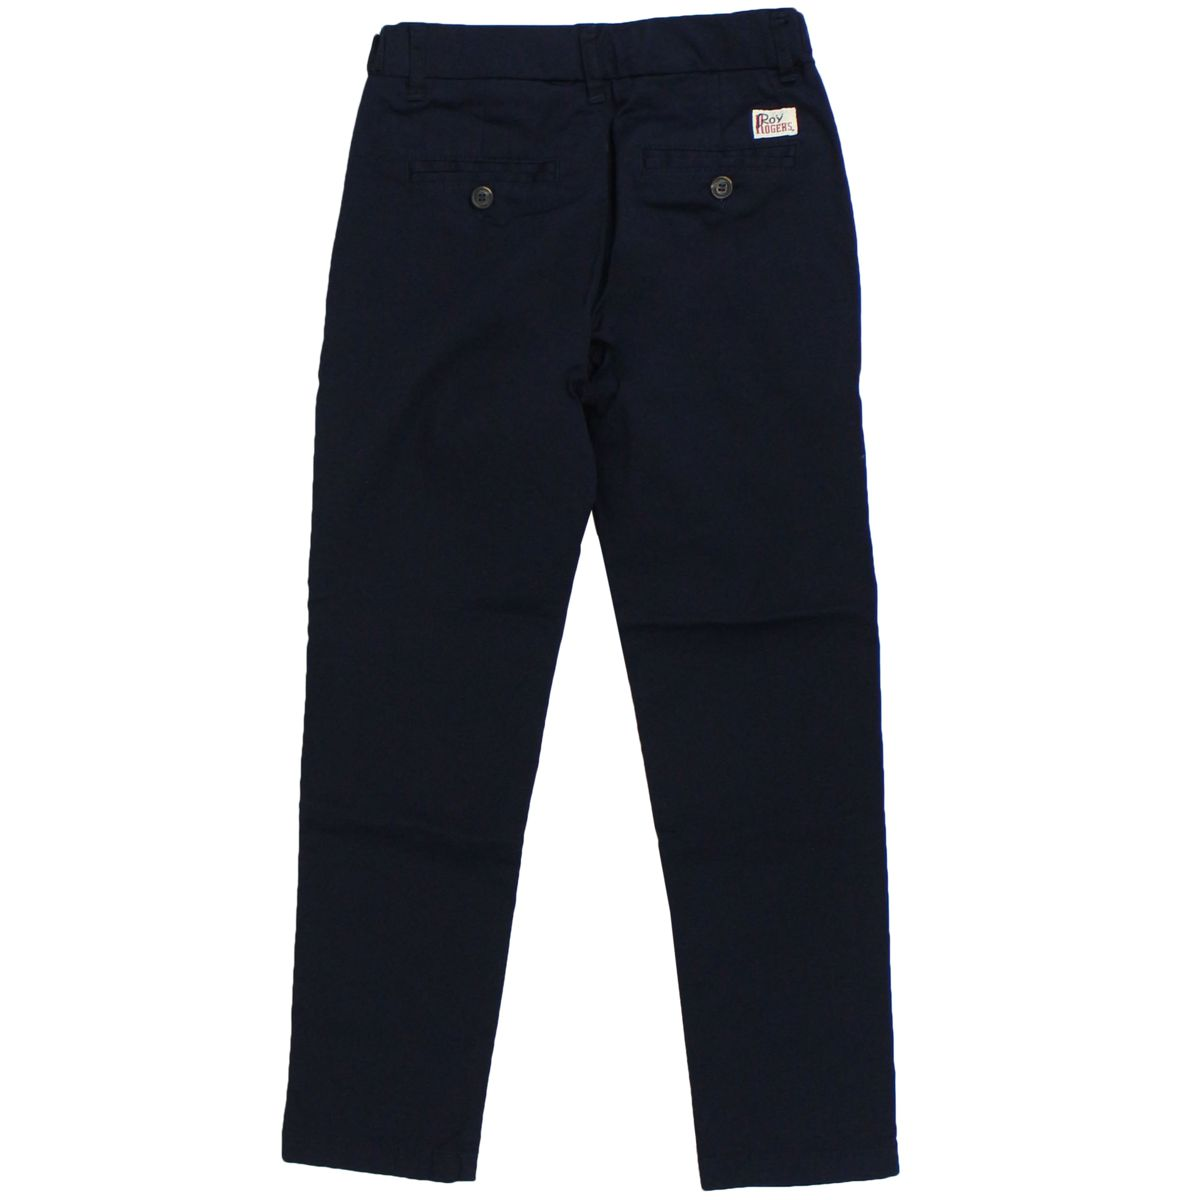 Amedeo trousers Blue ROY ROGER'S